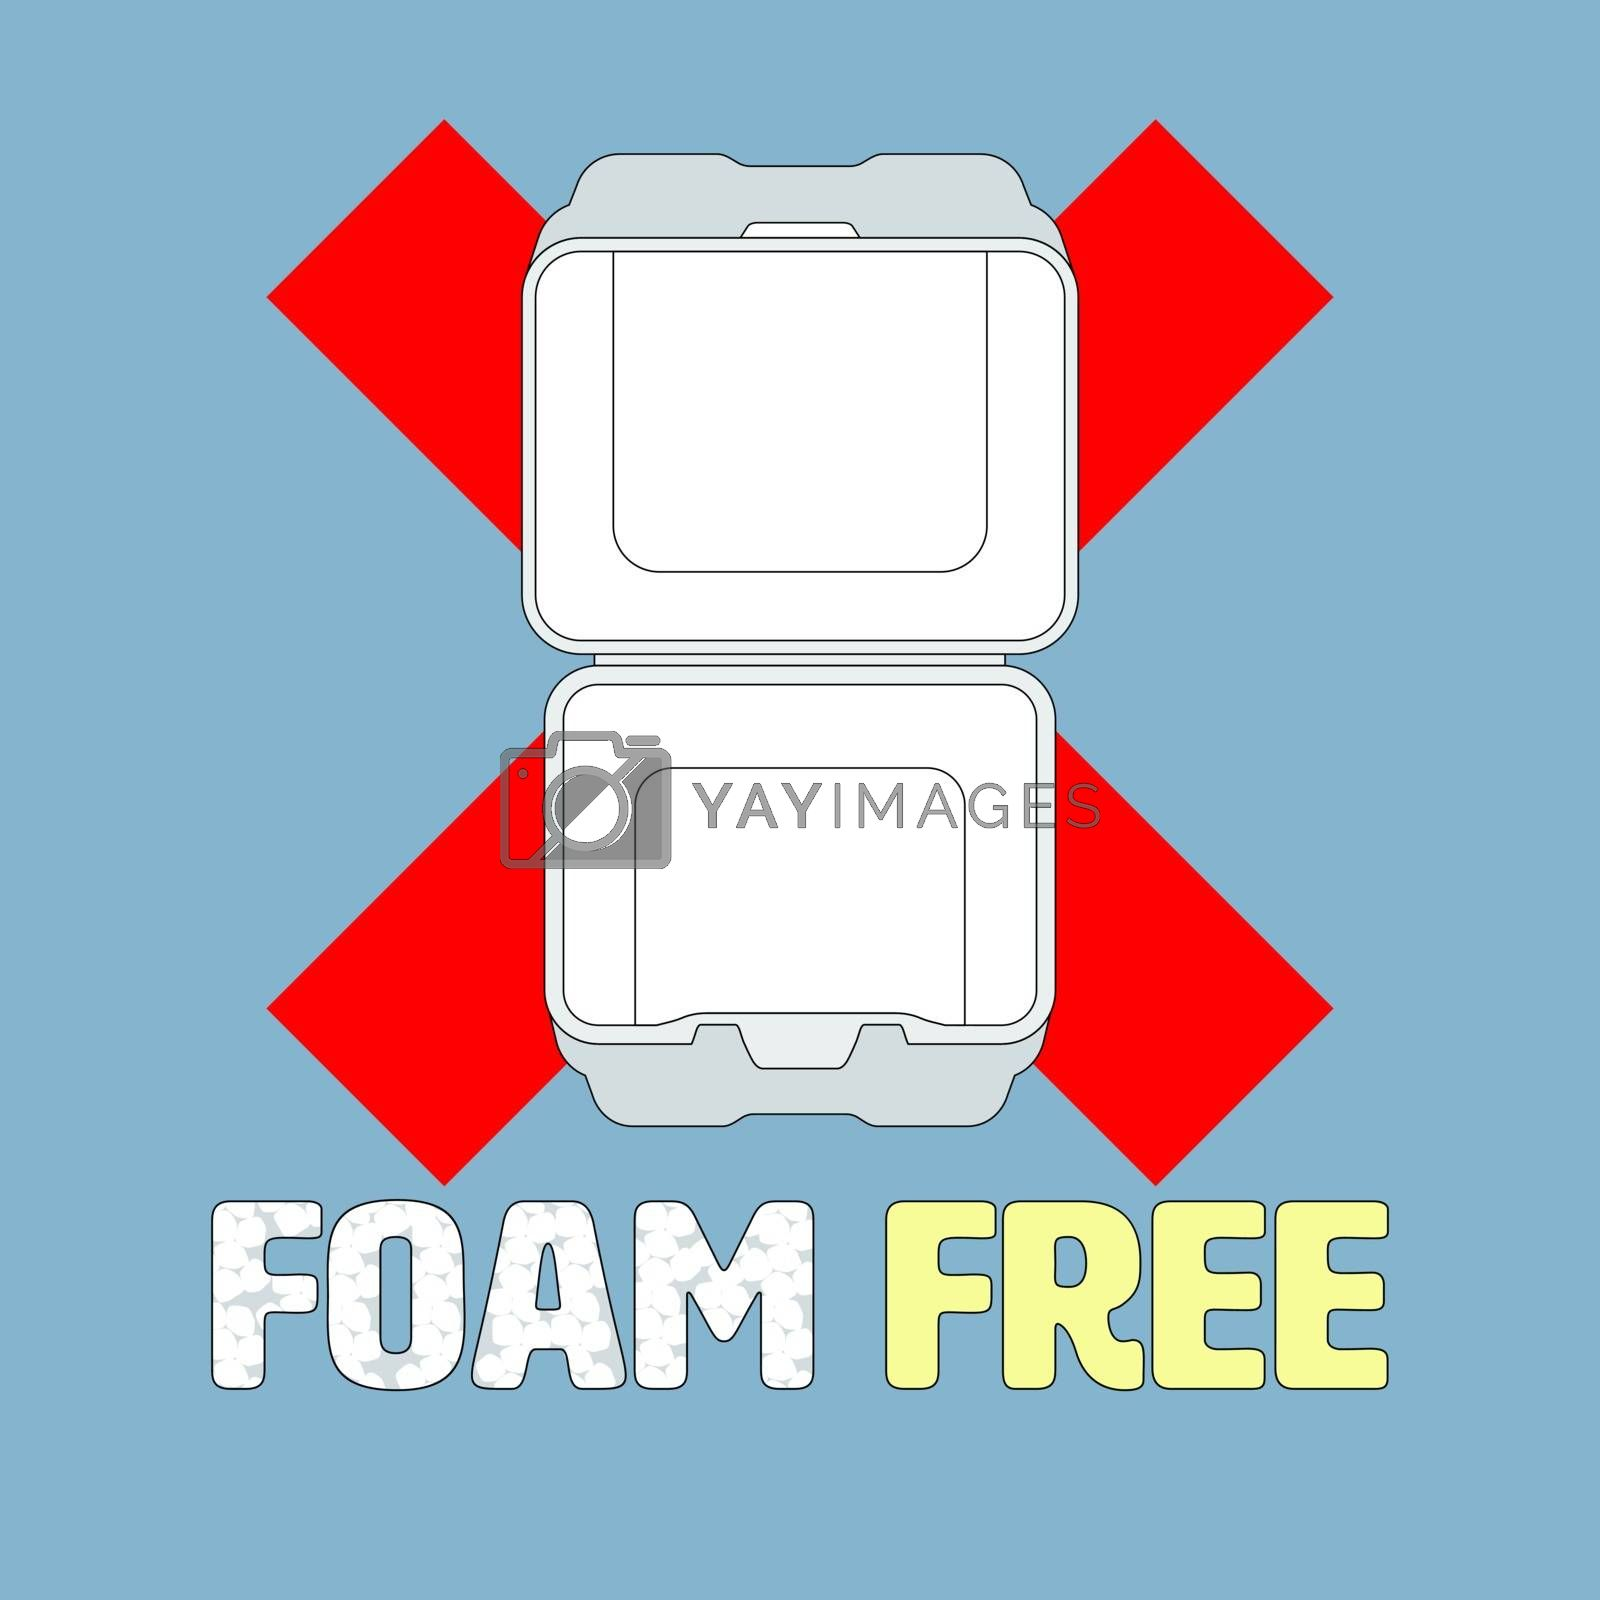 Ban cross symbol and outline flat icon of styrofoam container with foam beads typographic design. Foam free concept. Vector illustration.